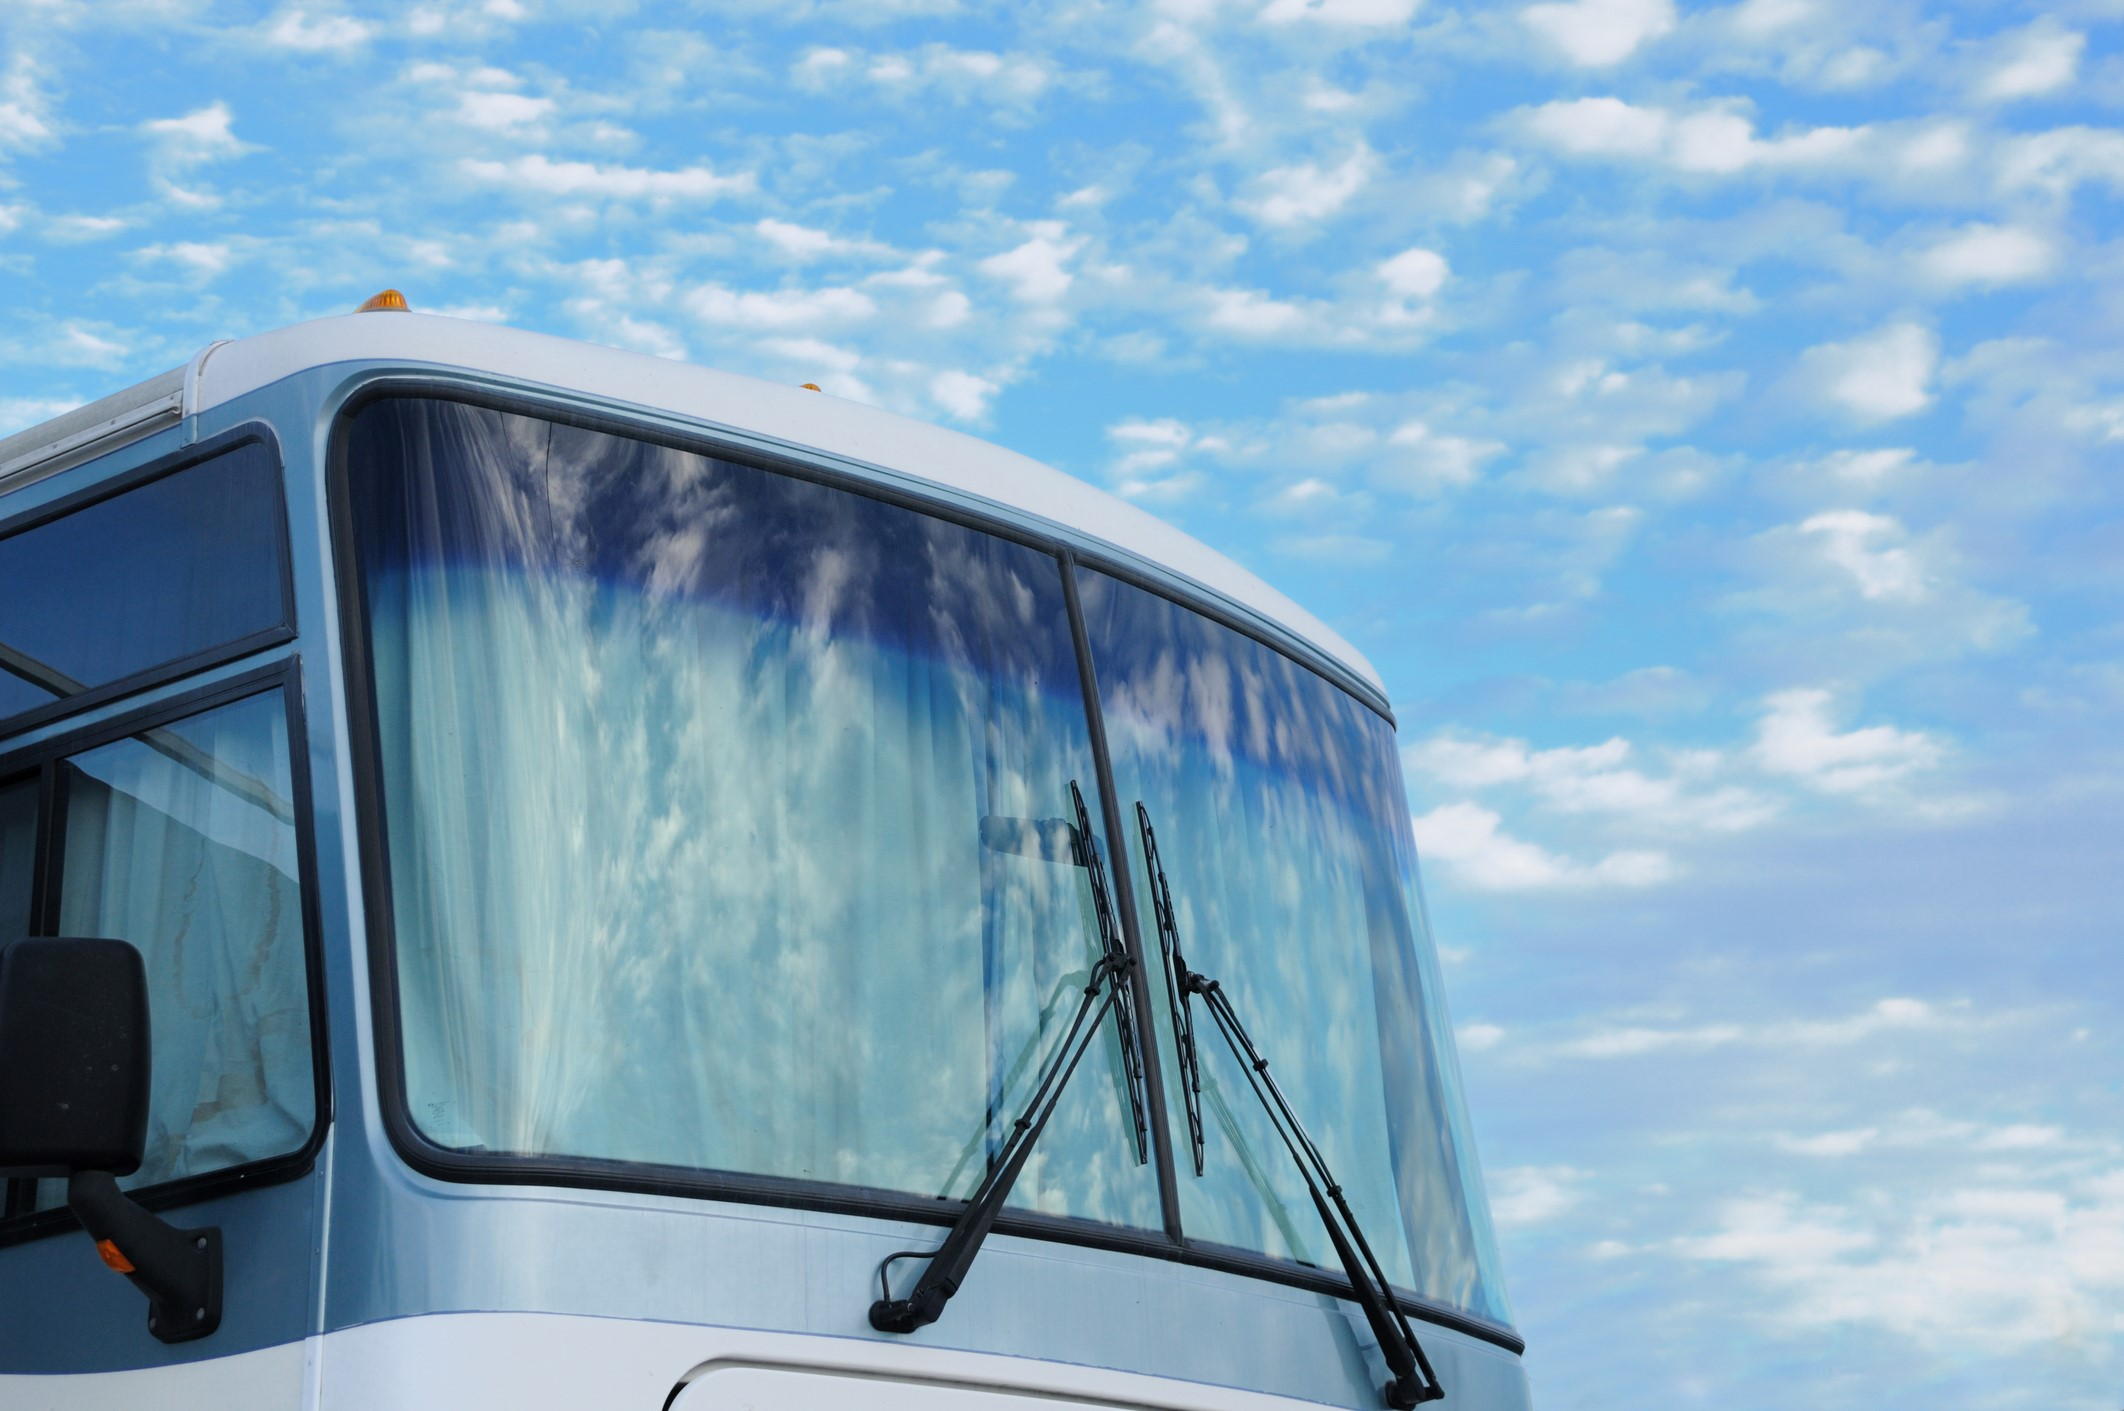 Close shot of a Class A RV windshield